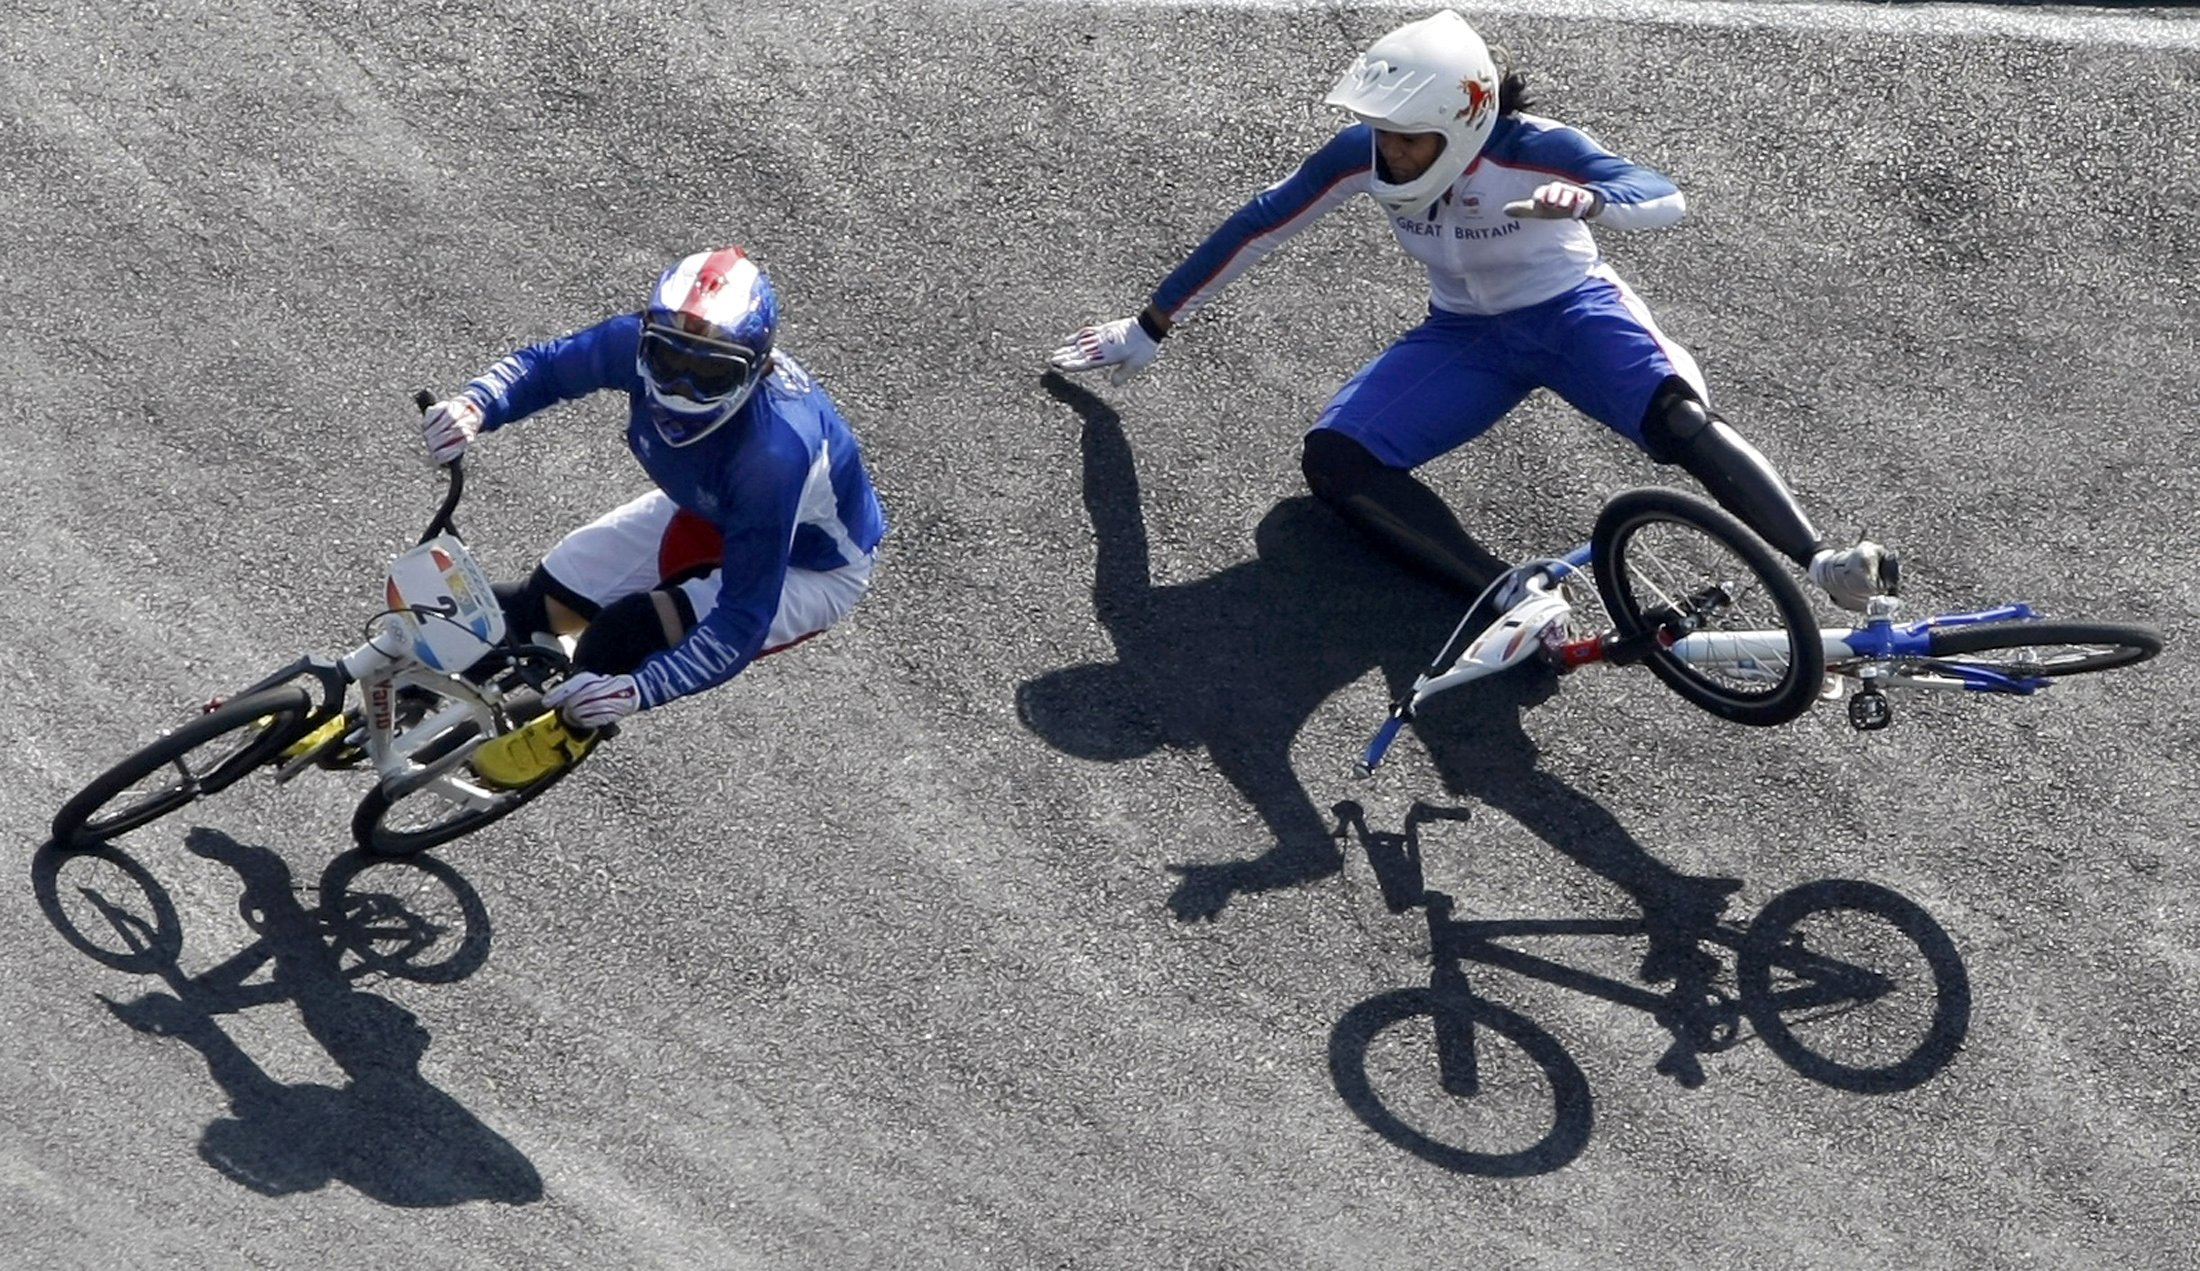 Anne-Caroline Chausson, left, of France takes the lead as Shanaze Reade of Britain falls during the women's final run.